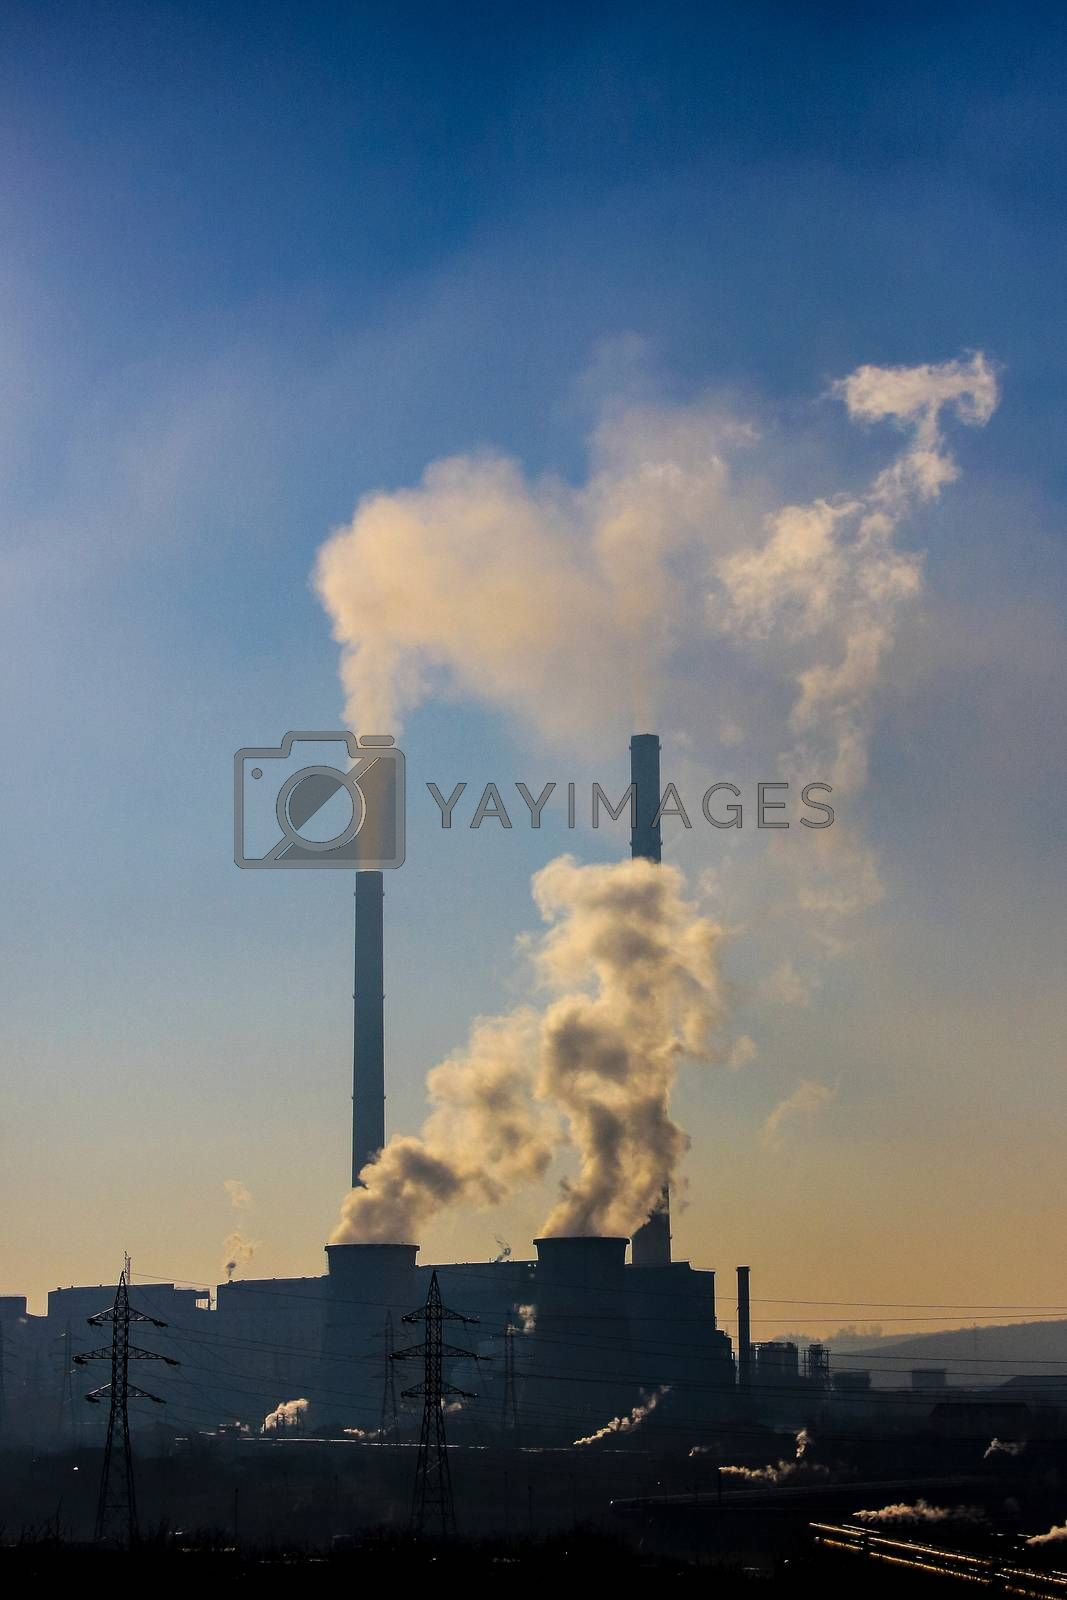 Thick smoke Air pollution from high and low furnaces  in an indu by shoricelu